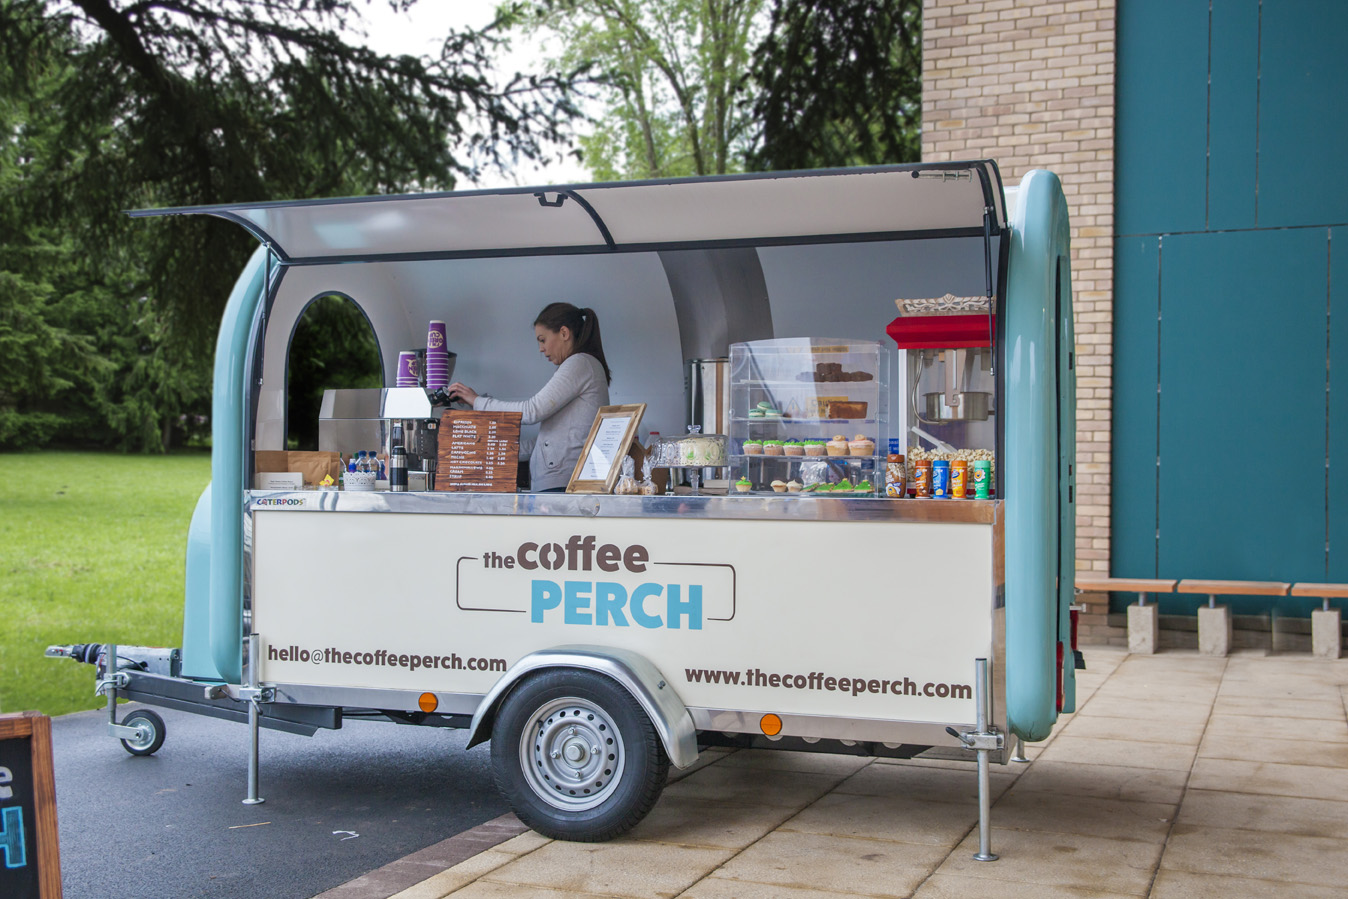 coffee pod the coffee perch mobile catering the coffee perch mobile catering. Black Bedroom Furniture Sets. Home Design Ideas